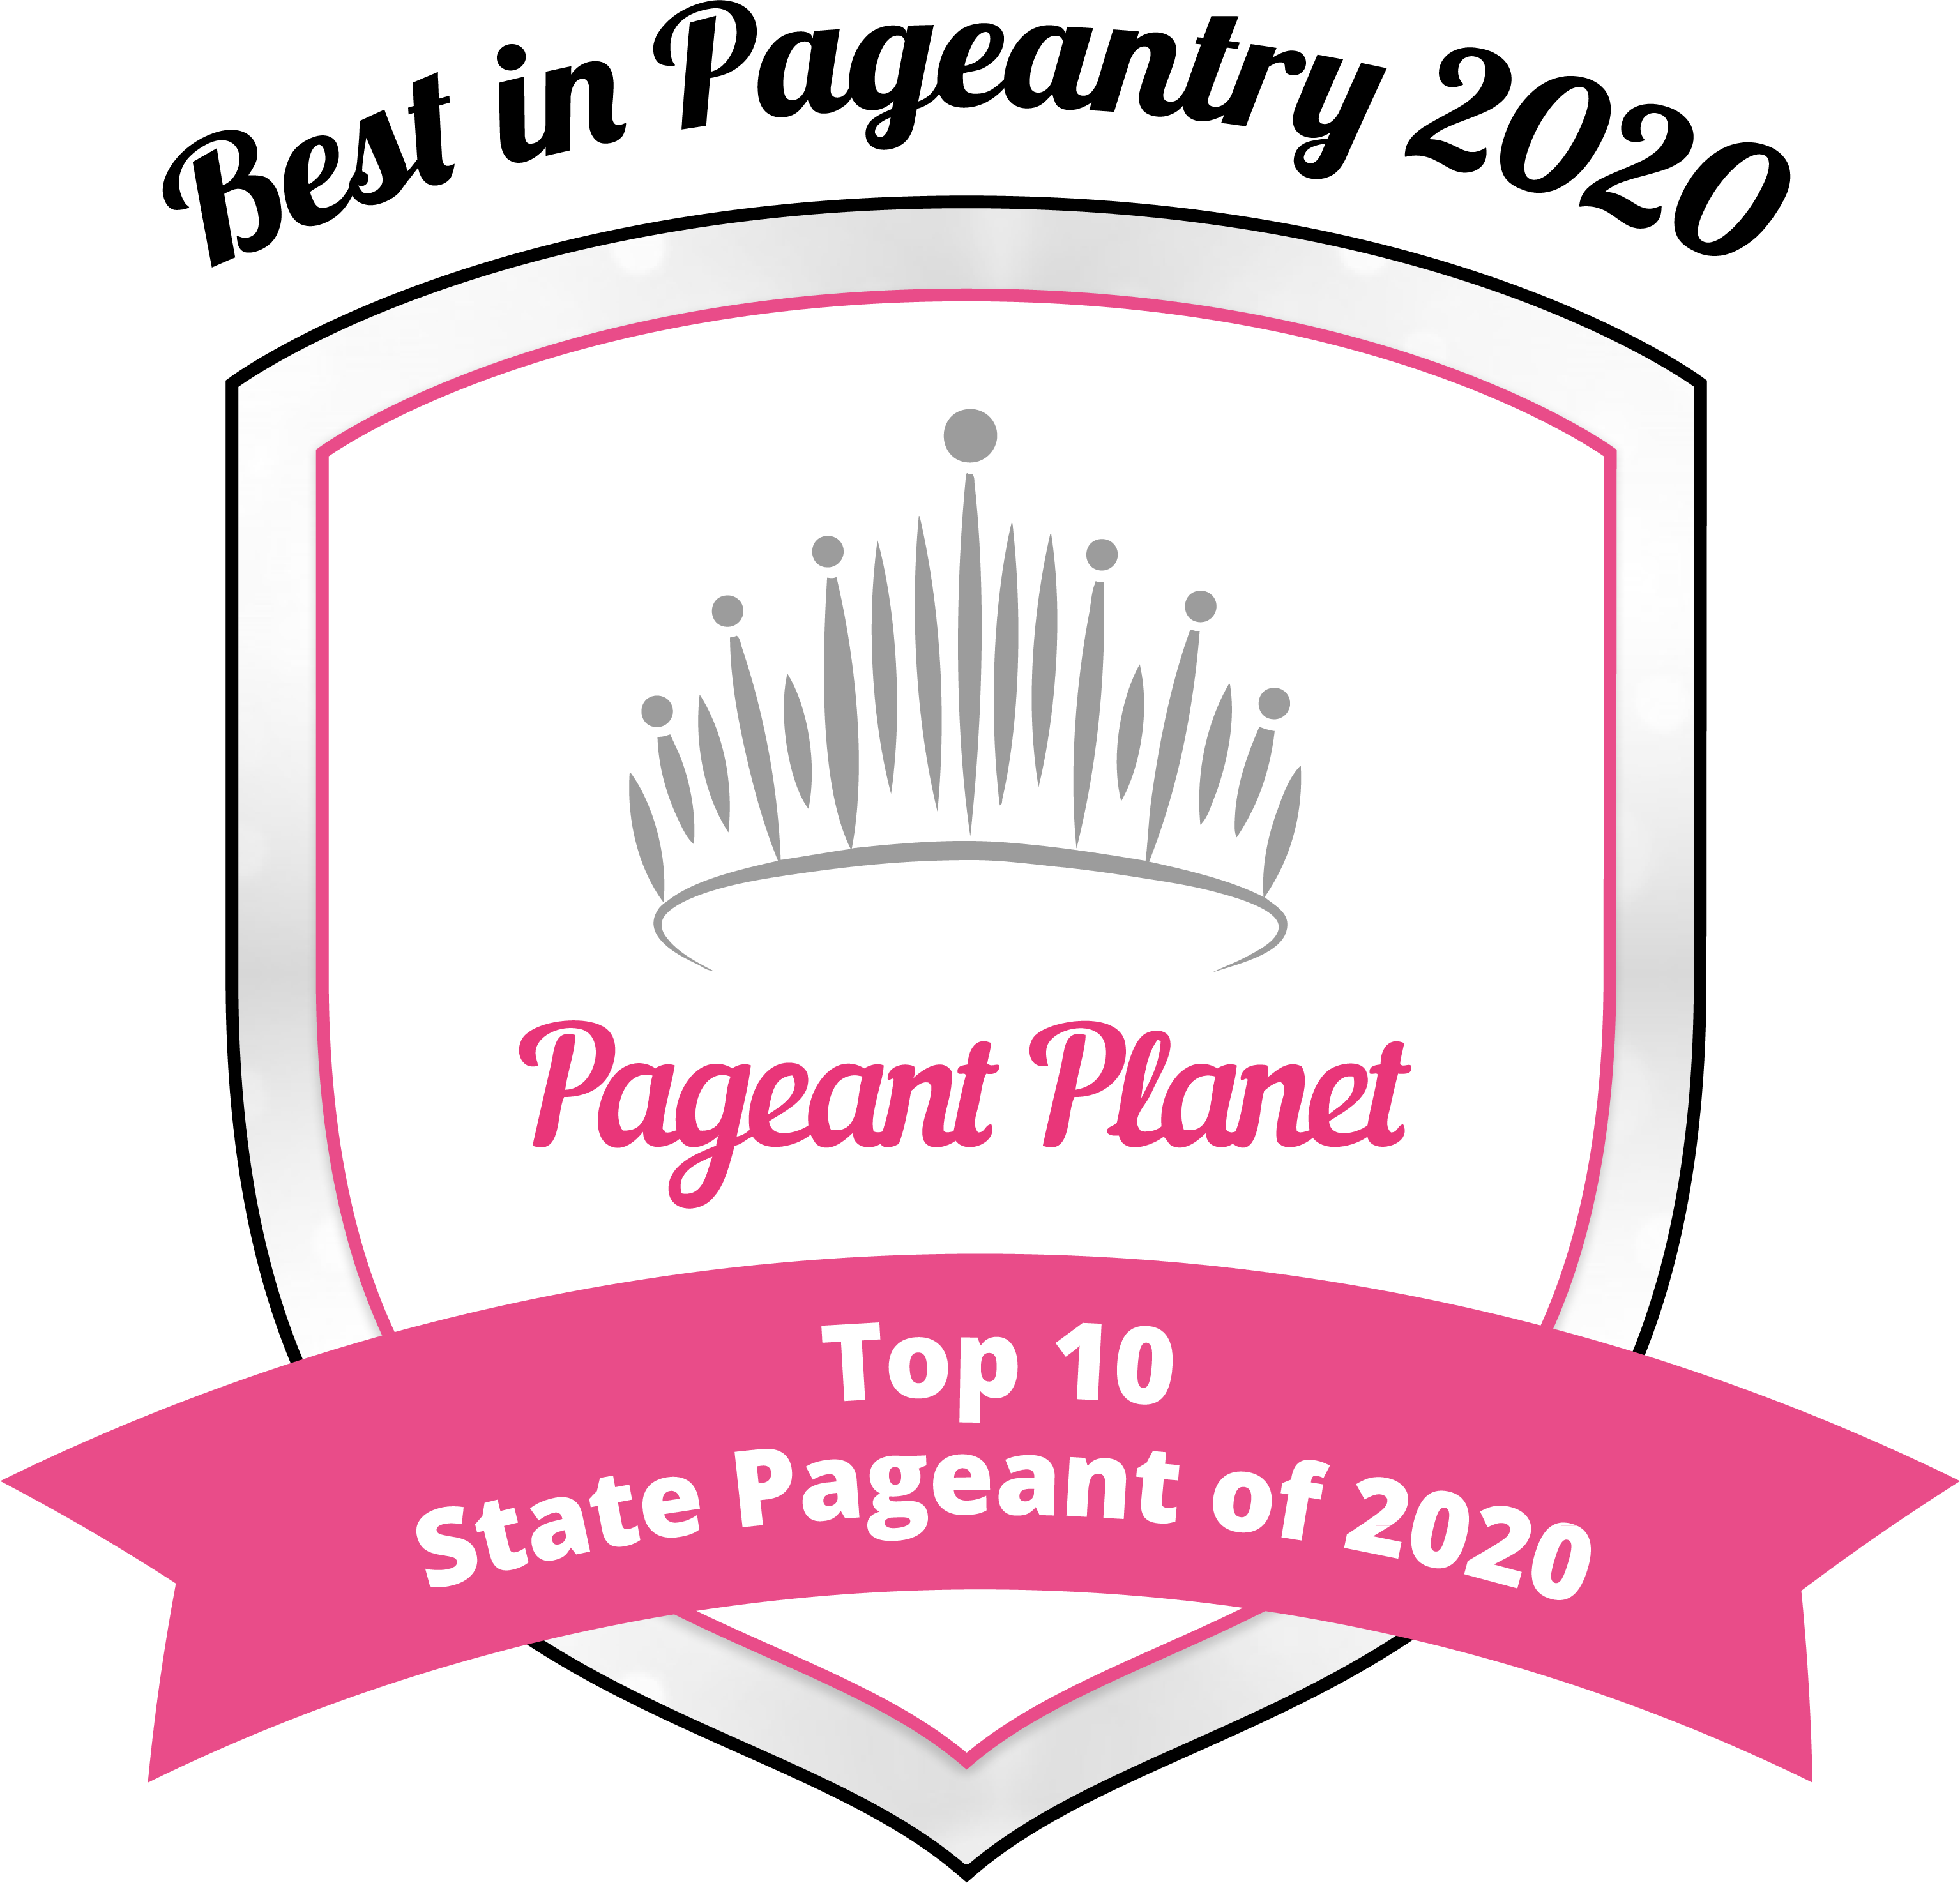 Top 10 State Pageant of 2020